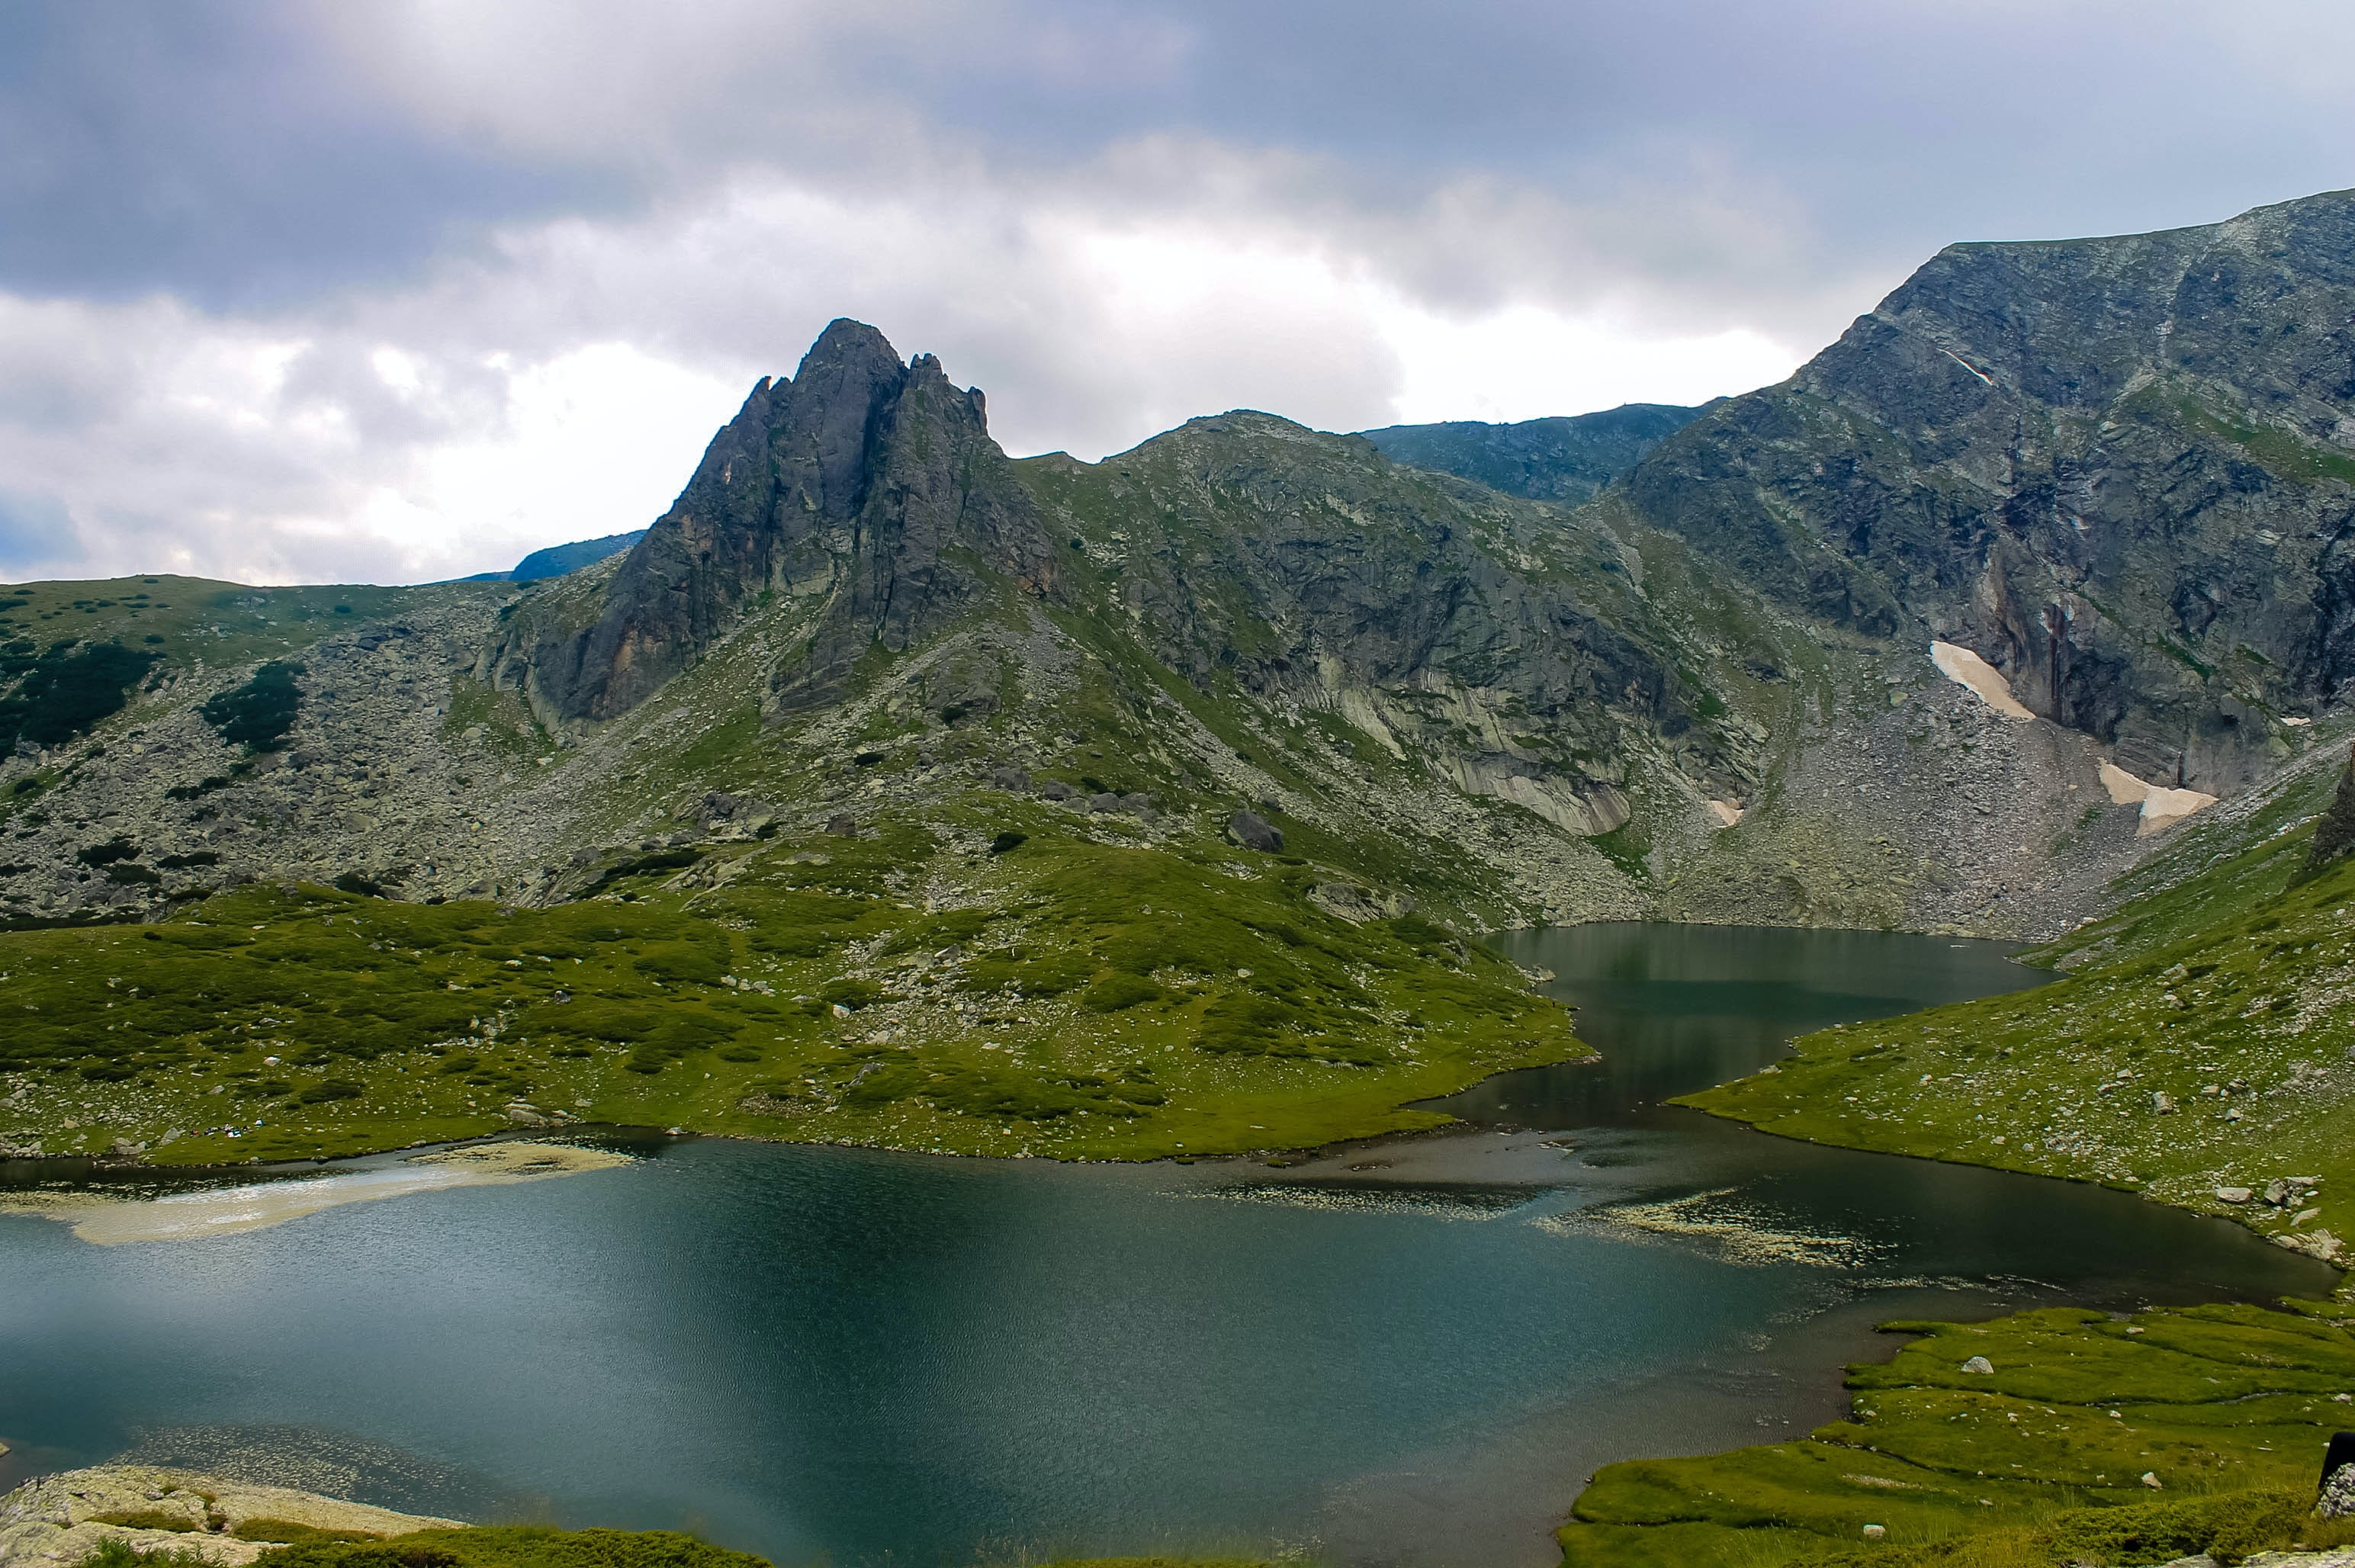 A dark turquoise lake in the middle of a green mountain valley